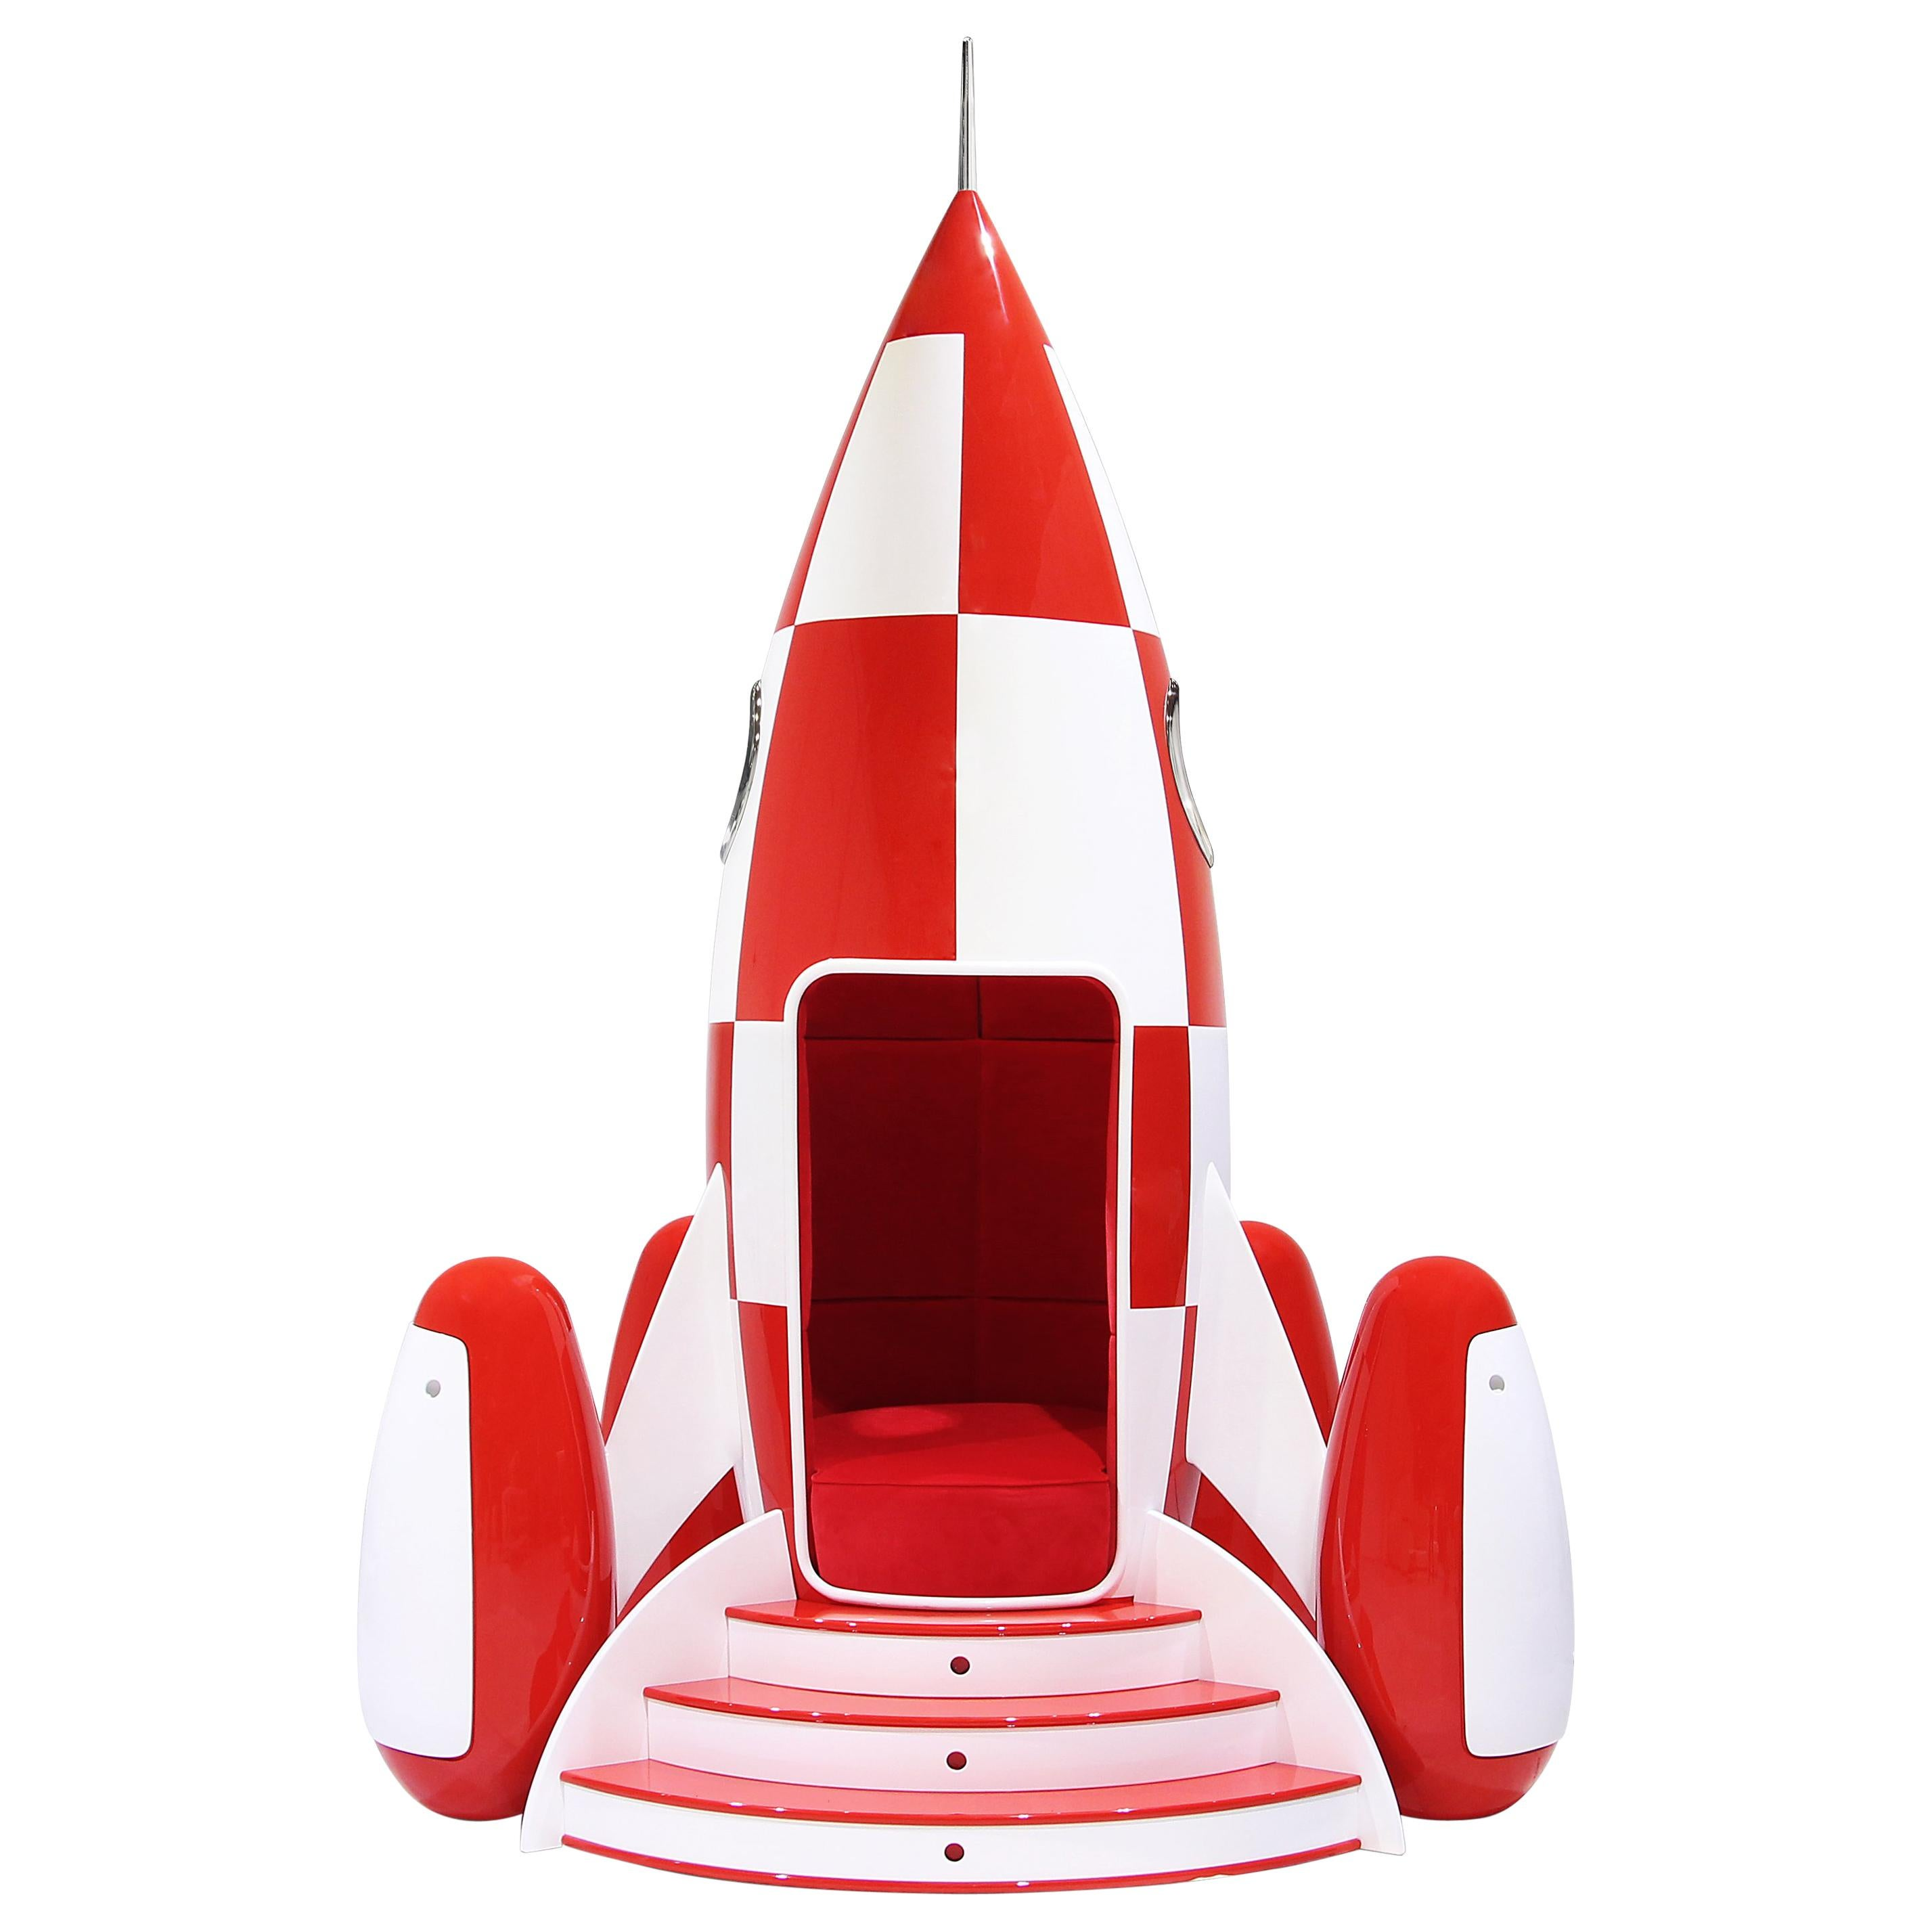 Superieur Rocky Rocket Chair In Red Velvet With Glossy Red And White Exterior For Sale